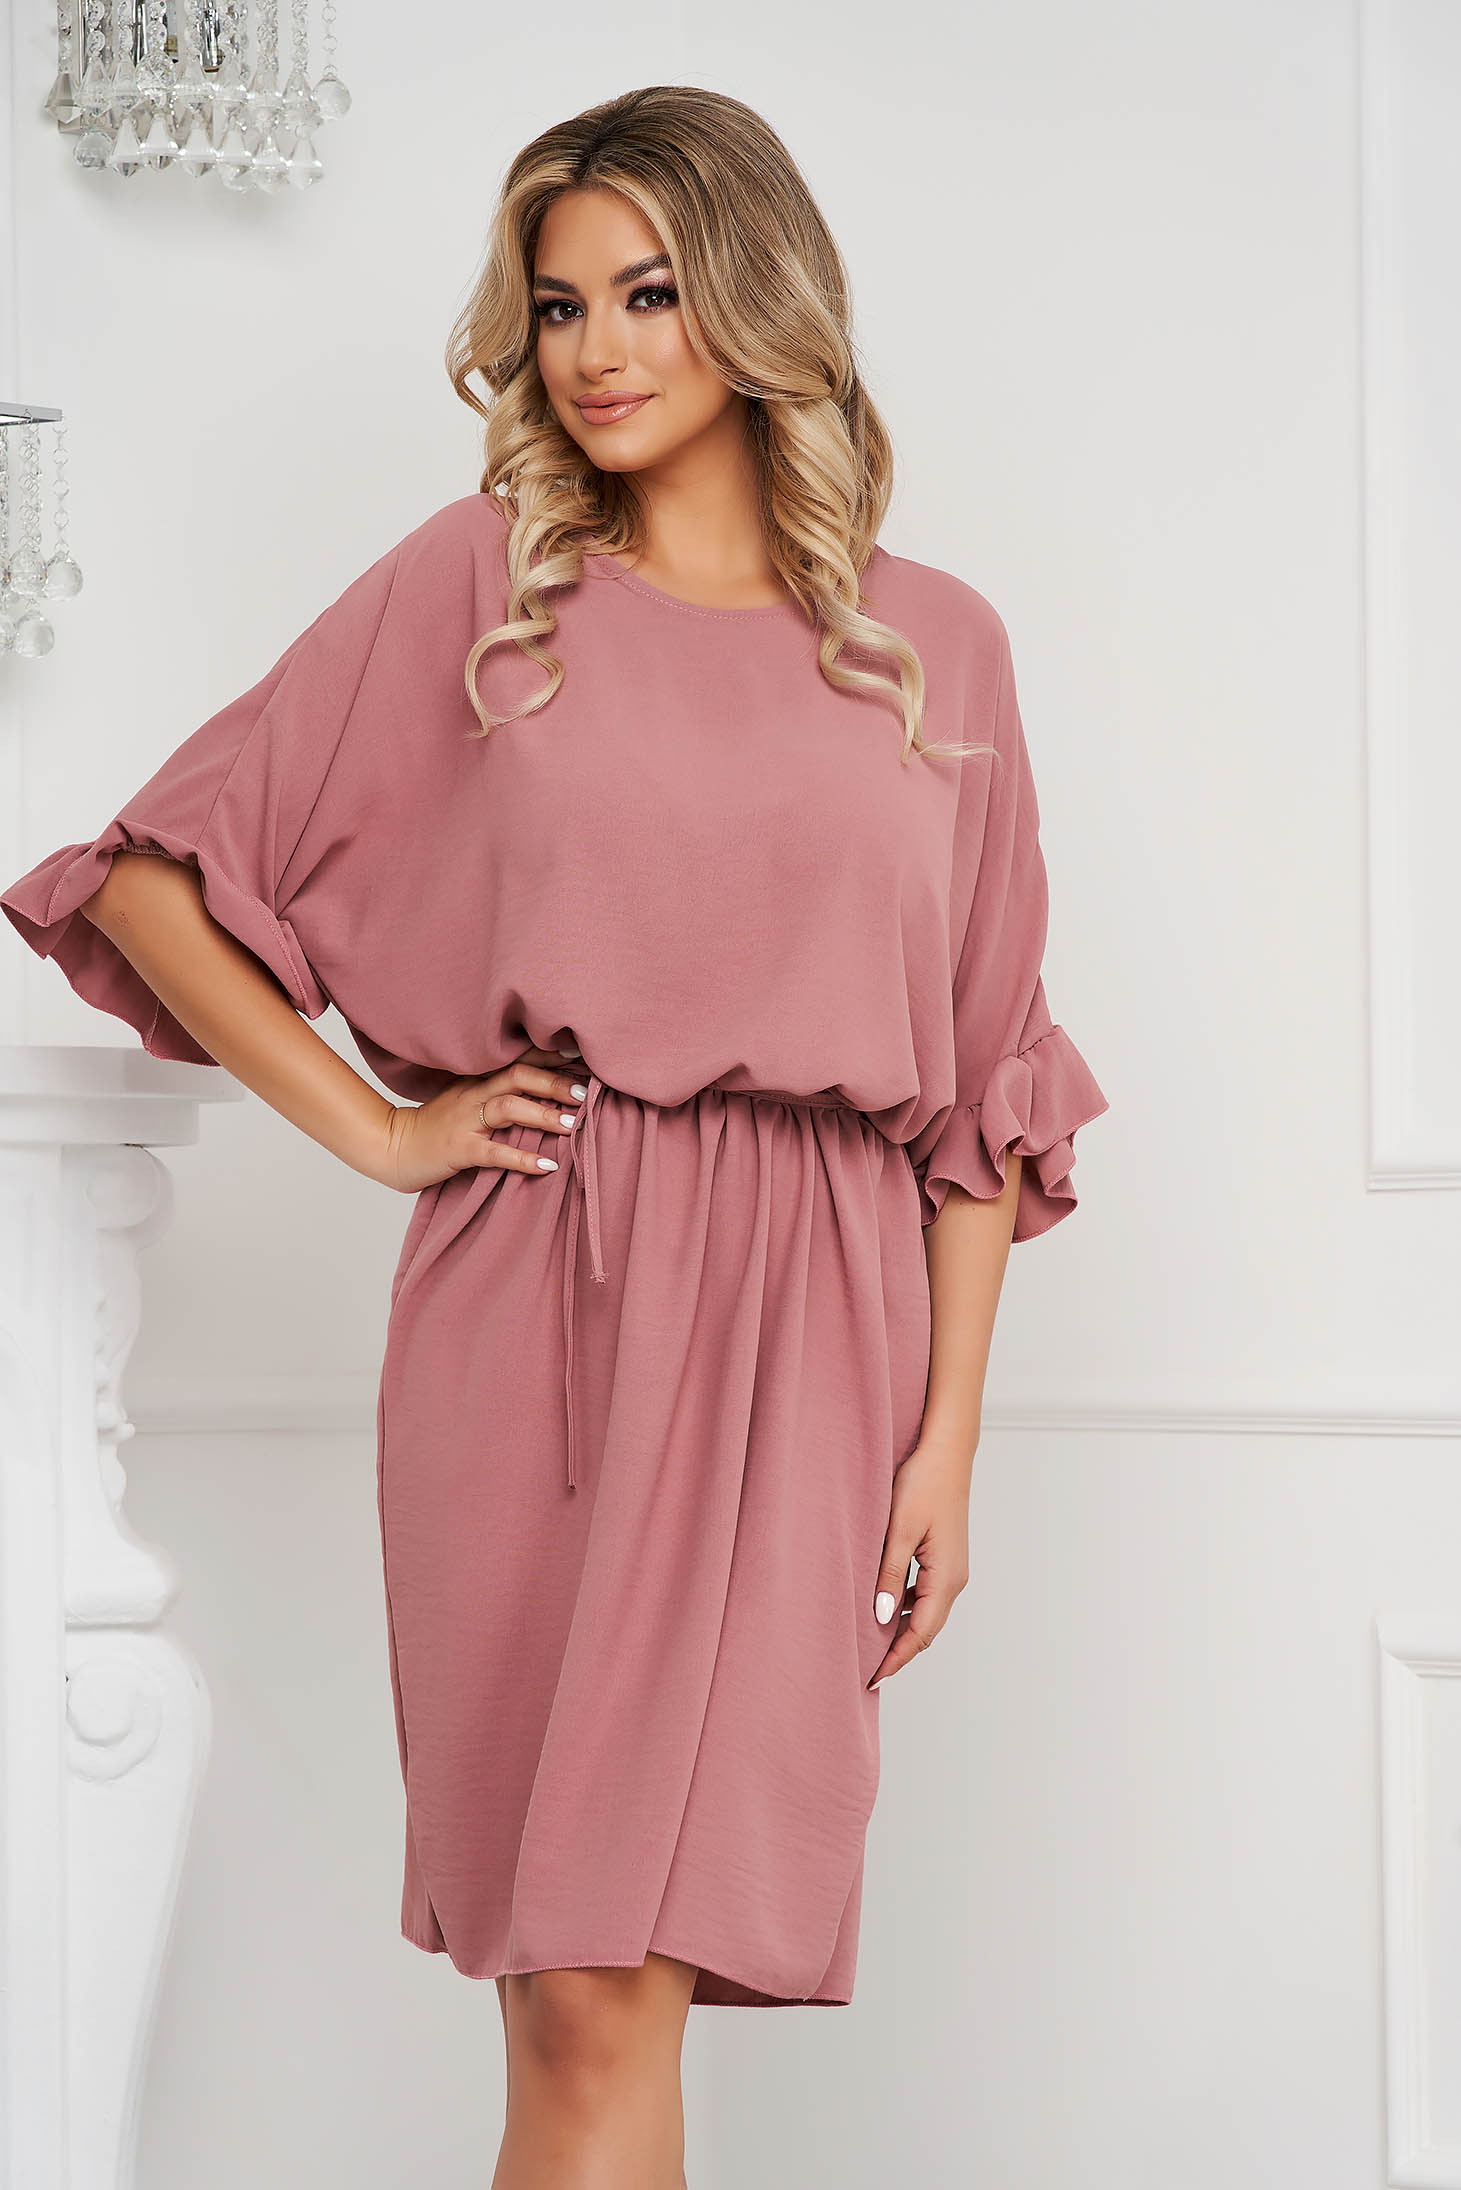 Lightpink dress short cut airy fabric cloche with elastic waist with ruffled sleeves